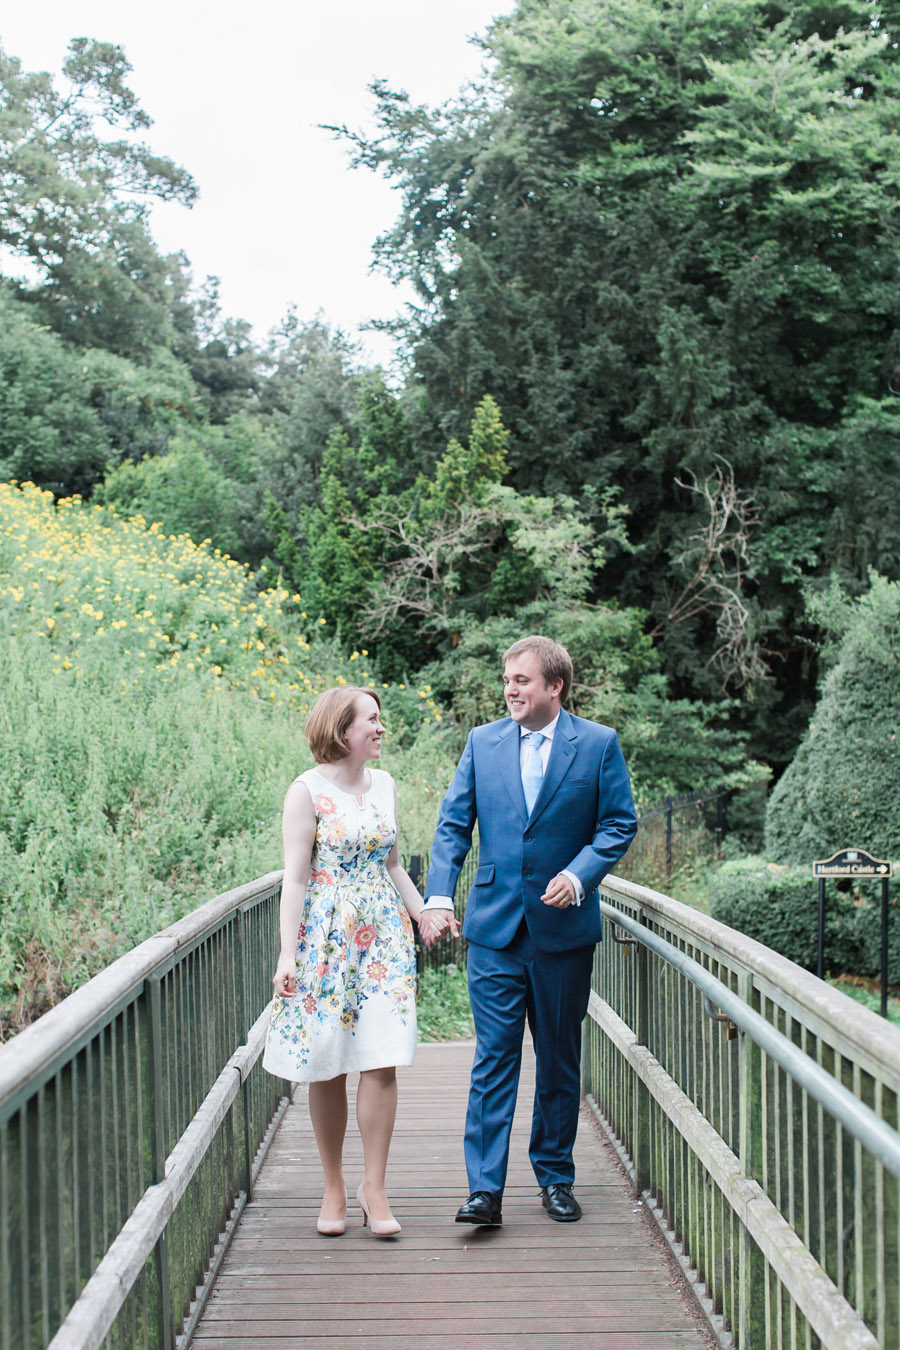 Hertford Castle intimate and alternative English wedding, photo credit Siobhan H Photography (23)